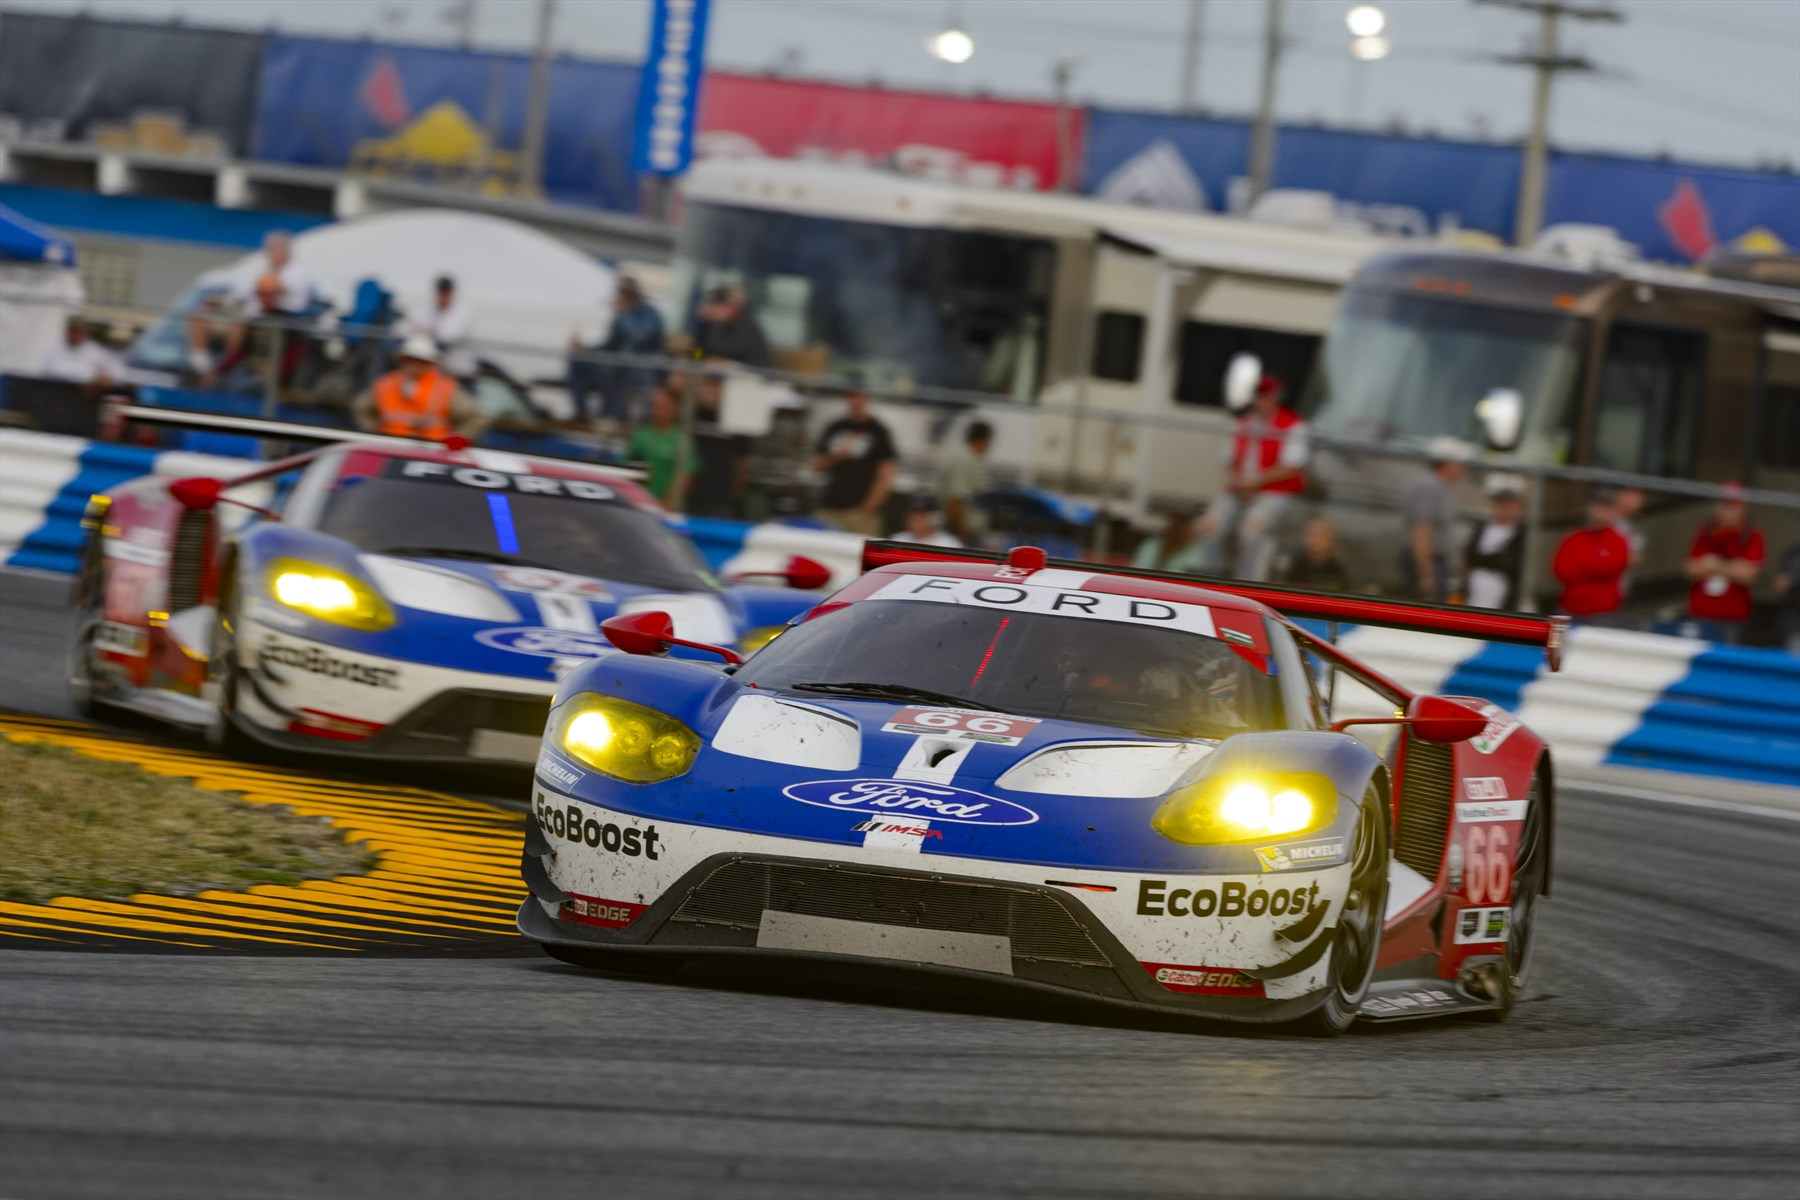 ford-gt-racecar-numbers_image_1800x1800